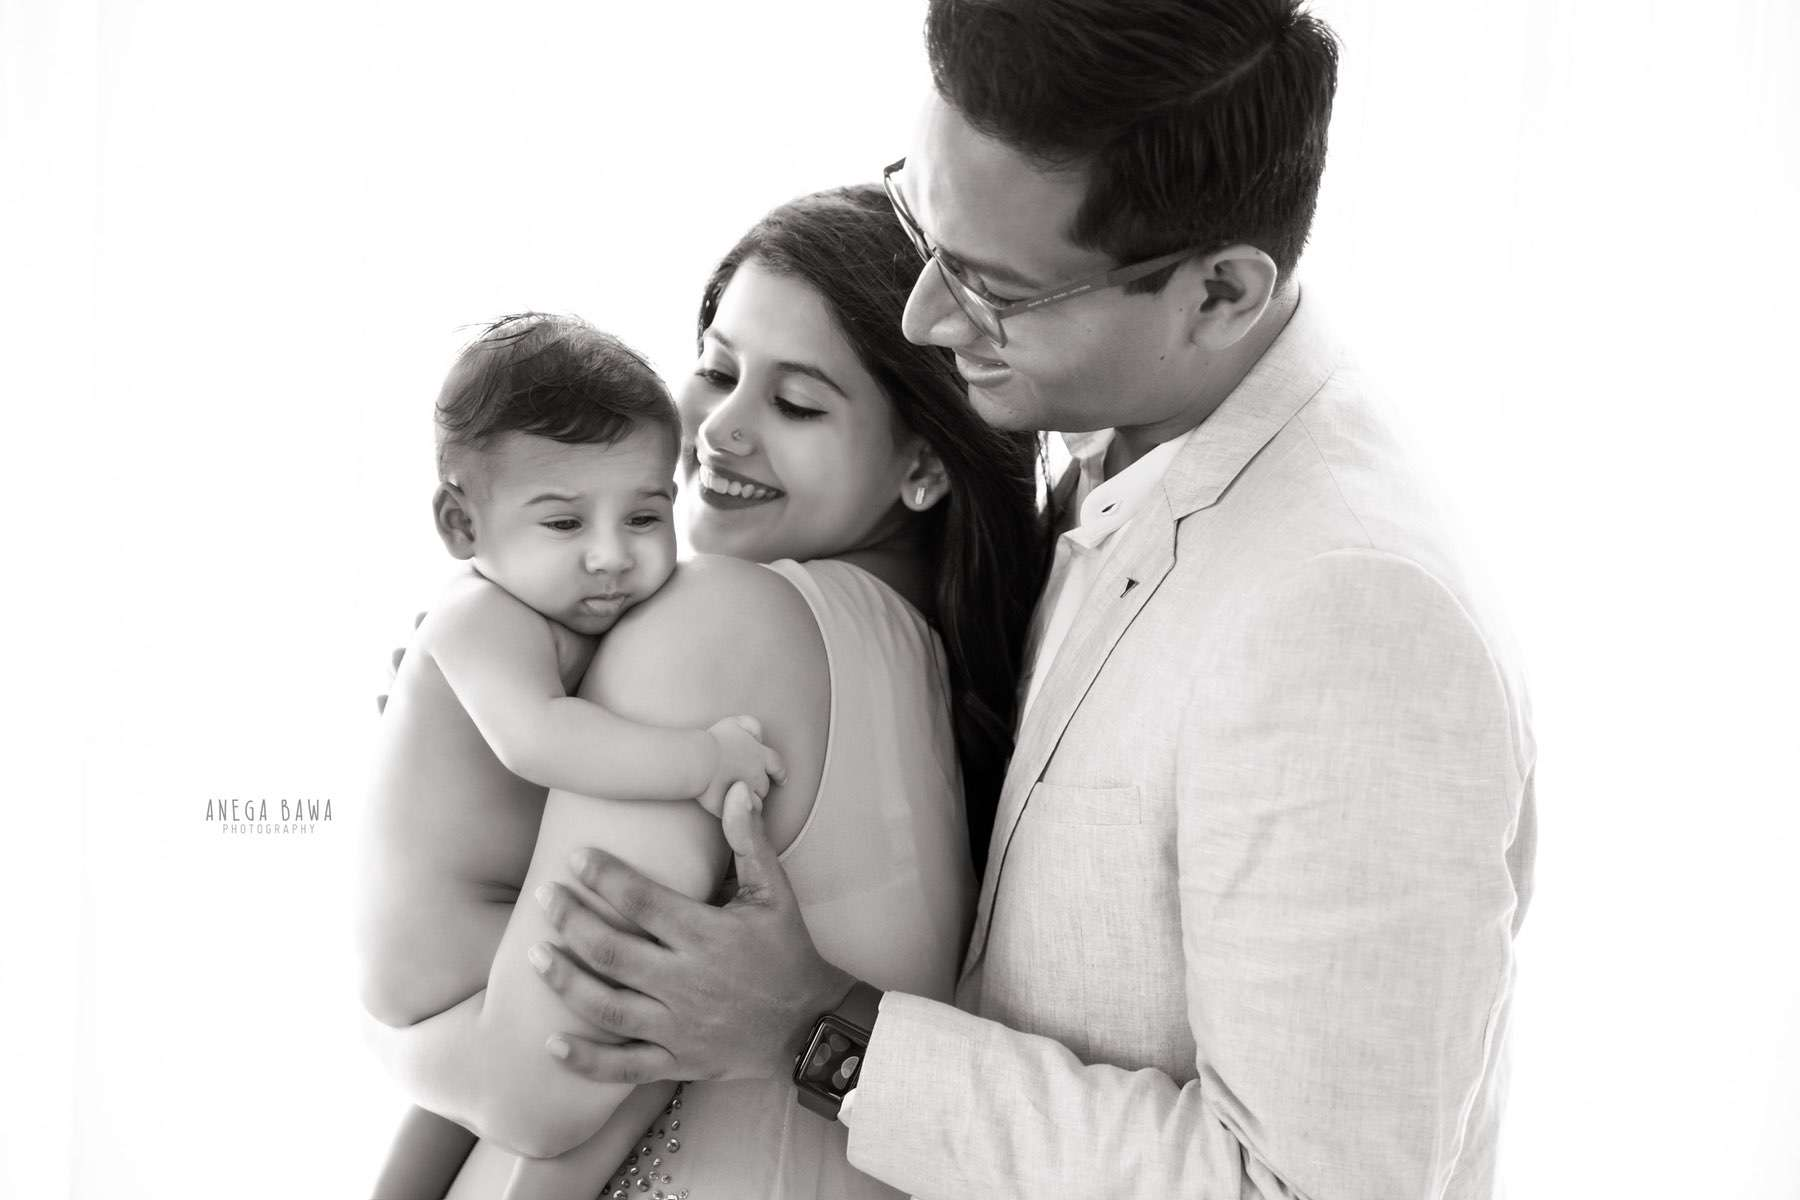 249911-black-and-white-family-baby-photography-delhi-4-5-6-7-months-baby-photoshoot-gurgaon-anega-bawa